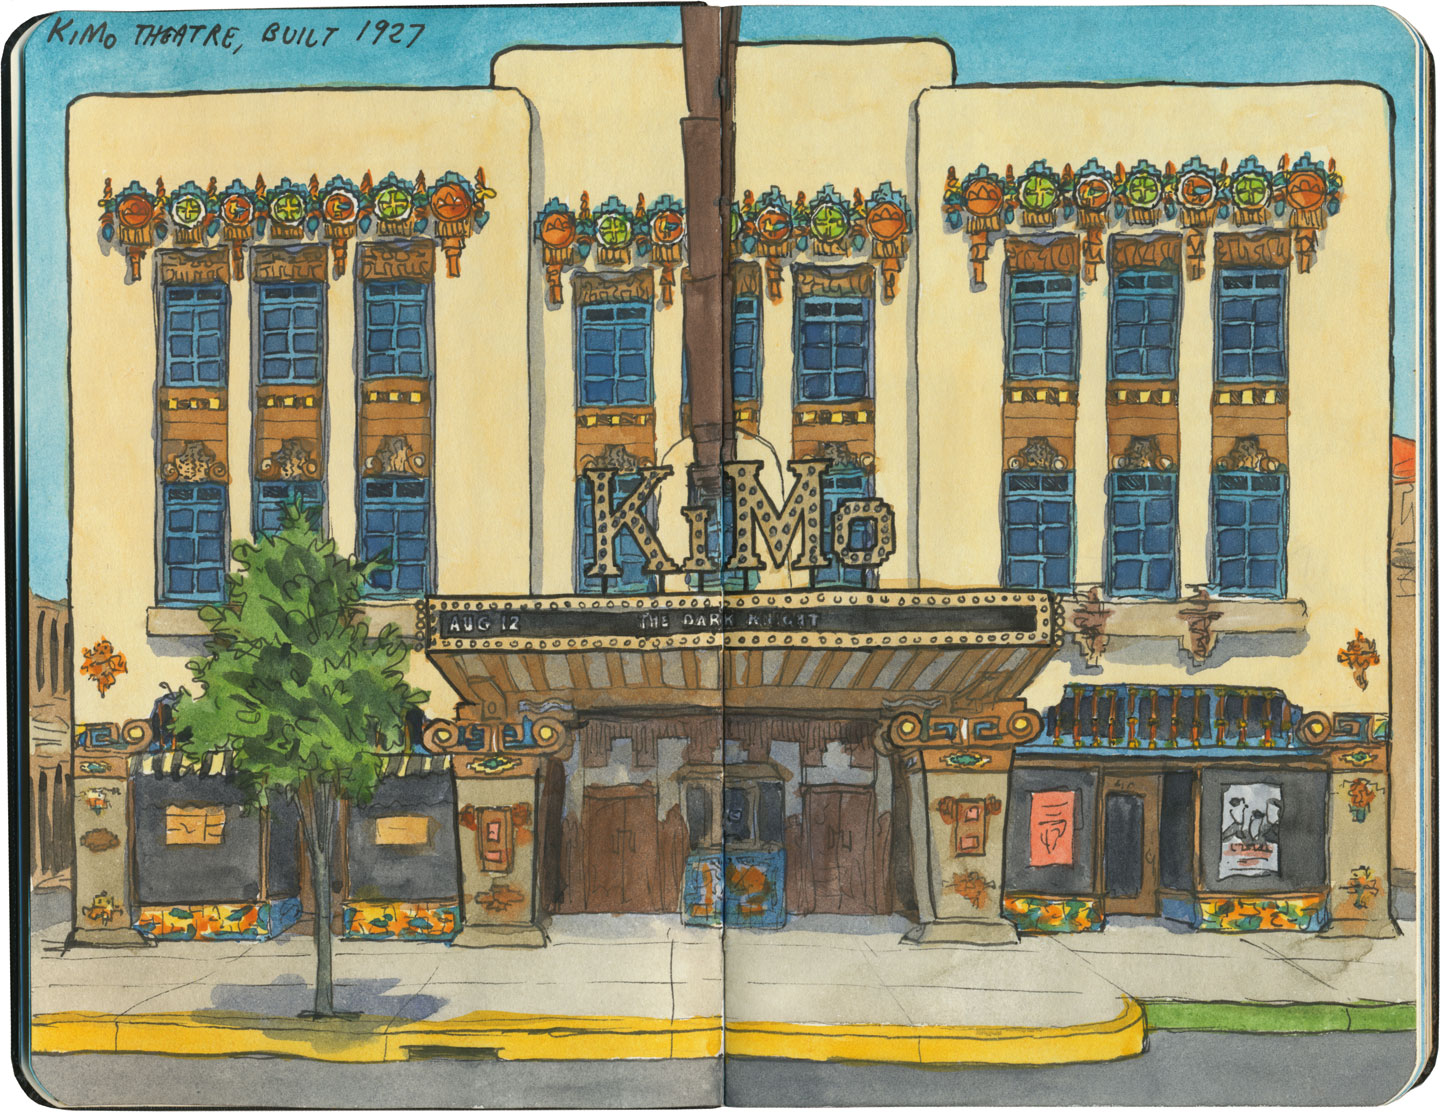 KiMo Theatre sketch by Chandler O'Leary